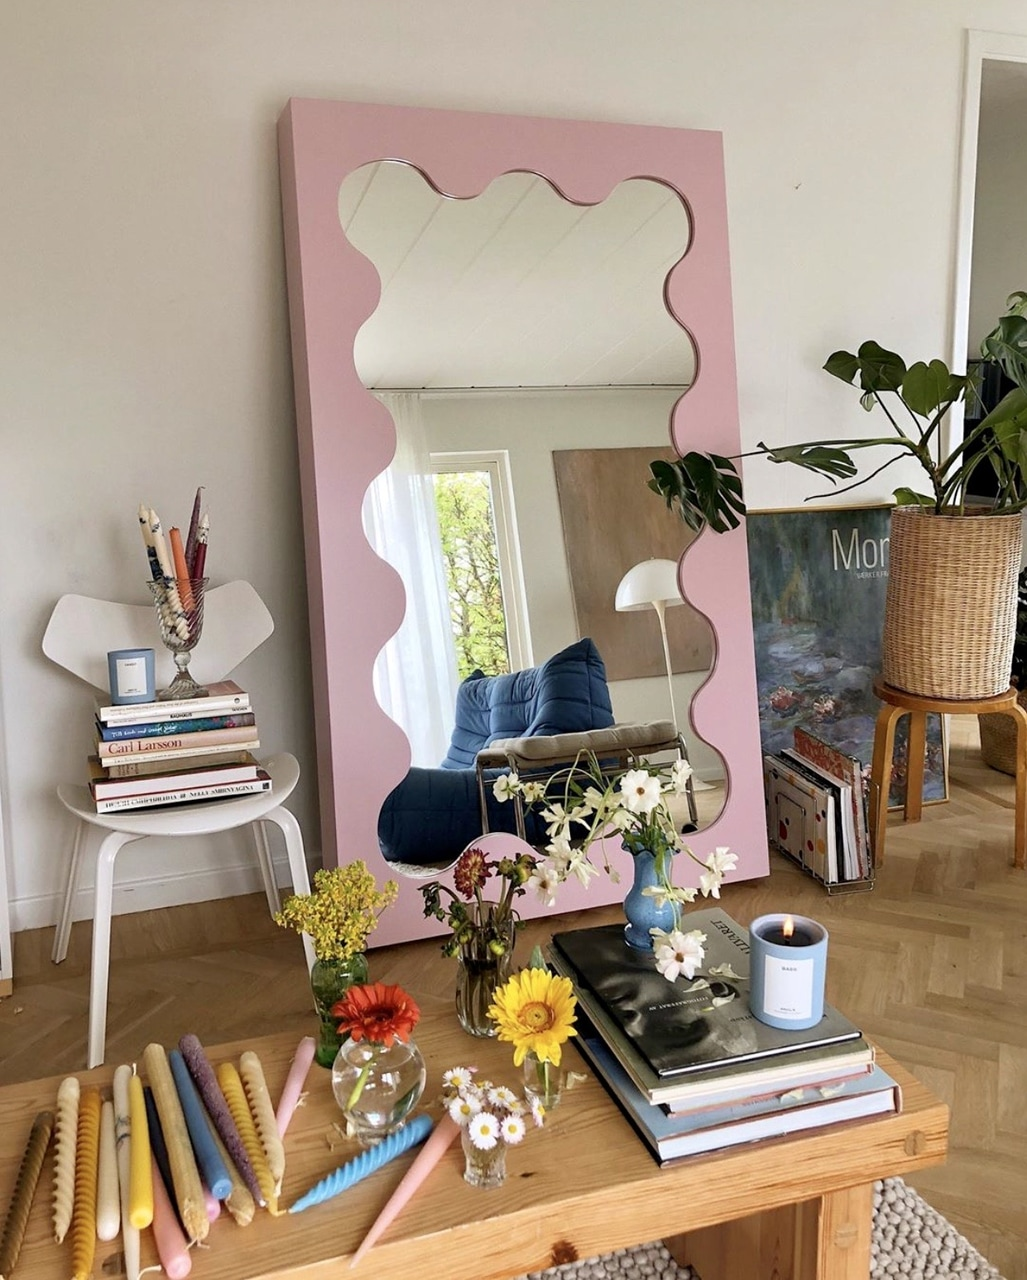 Anyone else obsessed with mirrors or is it just me! mirror by @gustafwestman on ig💕